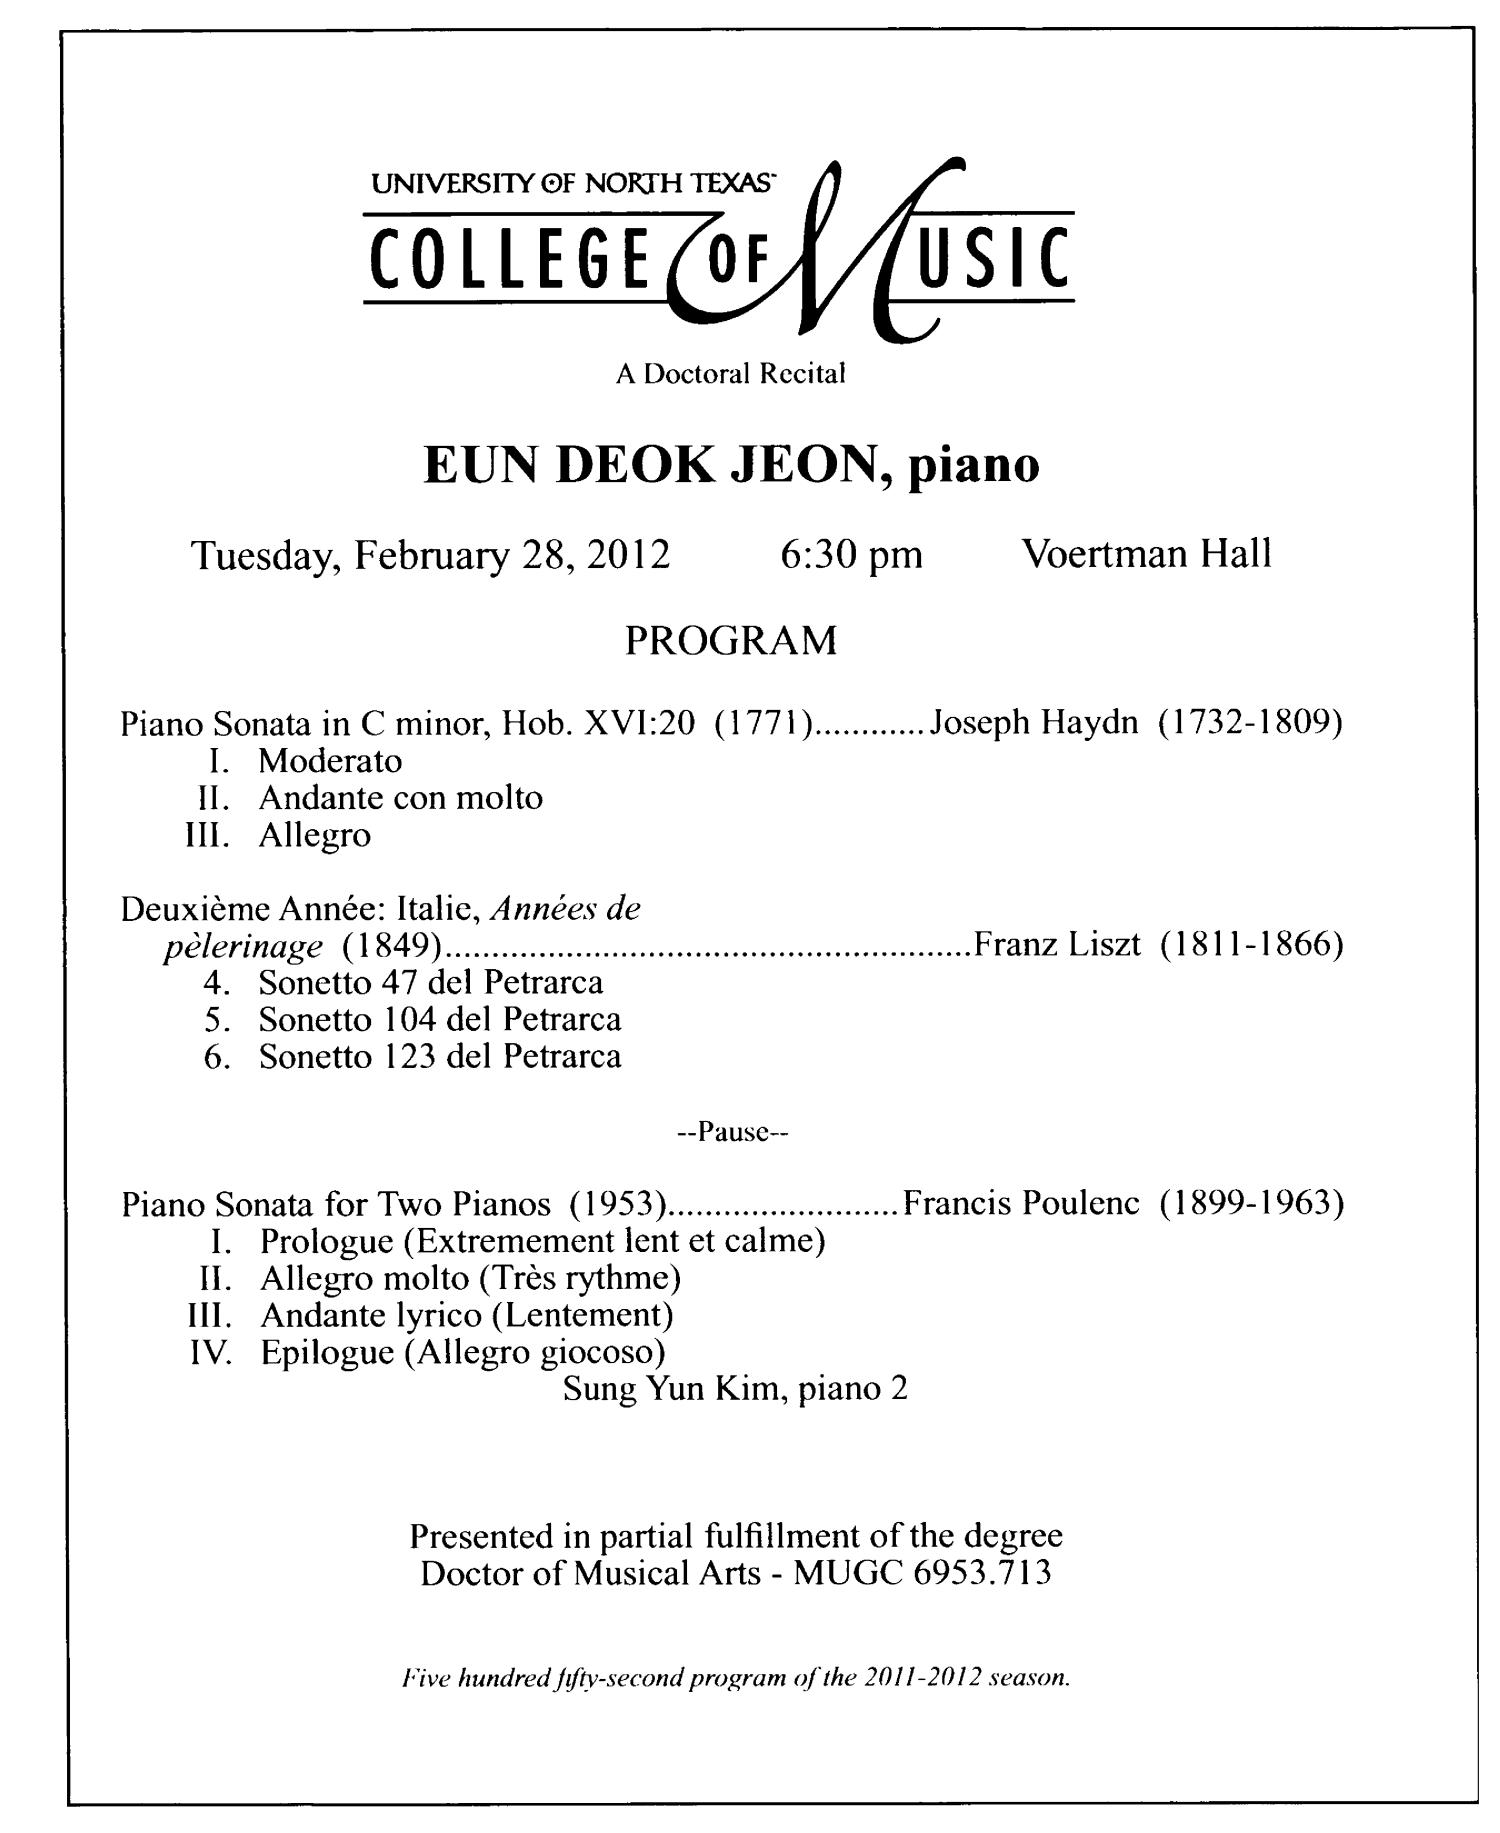 College of Music Program Book 2011-2012: Student Performances, Volume 2                                                                                                      76